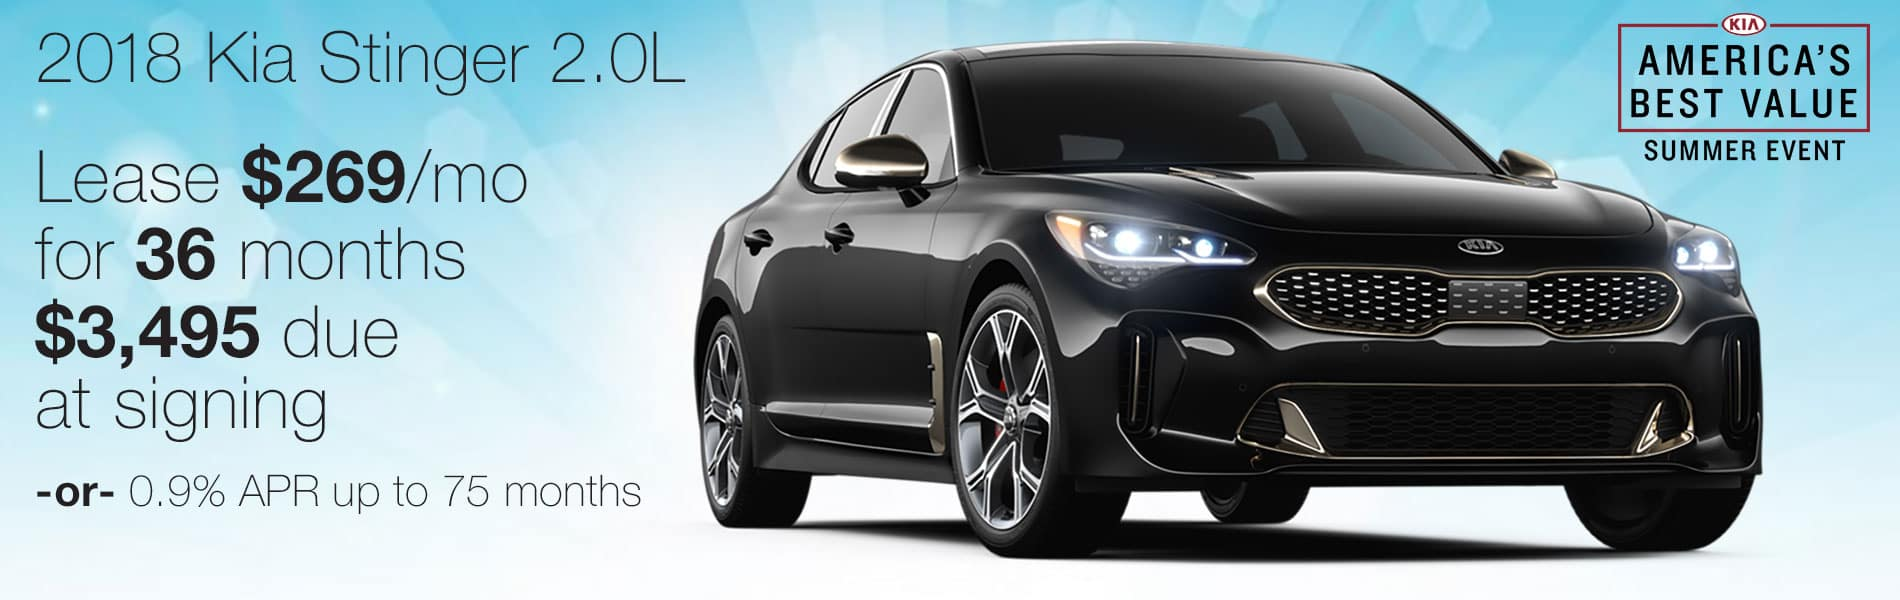 Lease an Kia Stinger 2.0L for $269 per month with just $3,495 due at signing or 0.9% APR up to 75 months